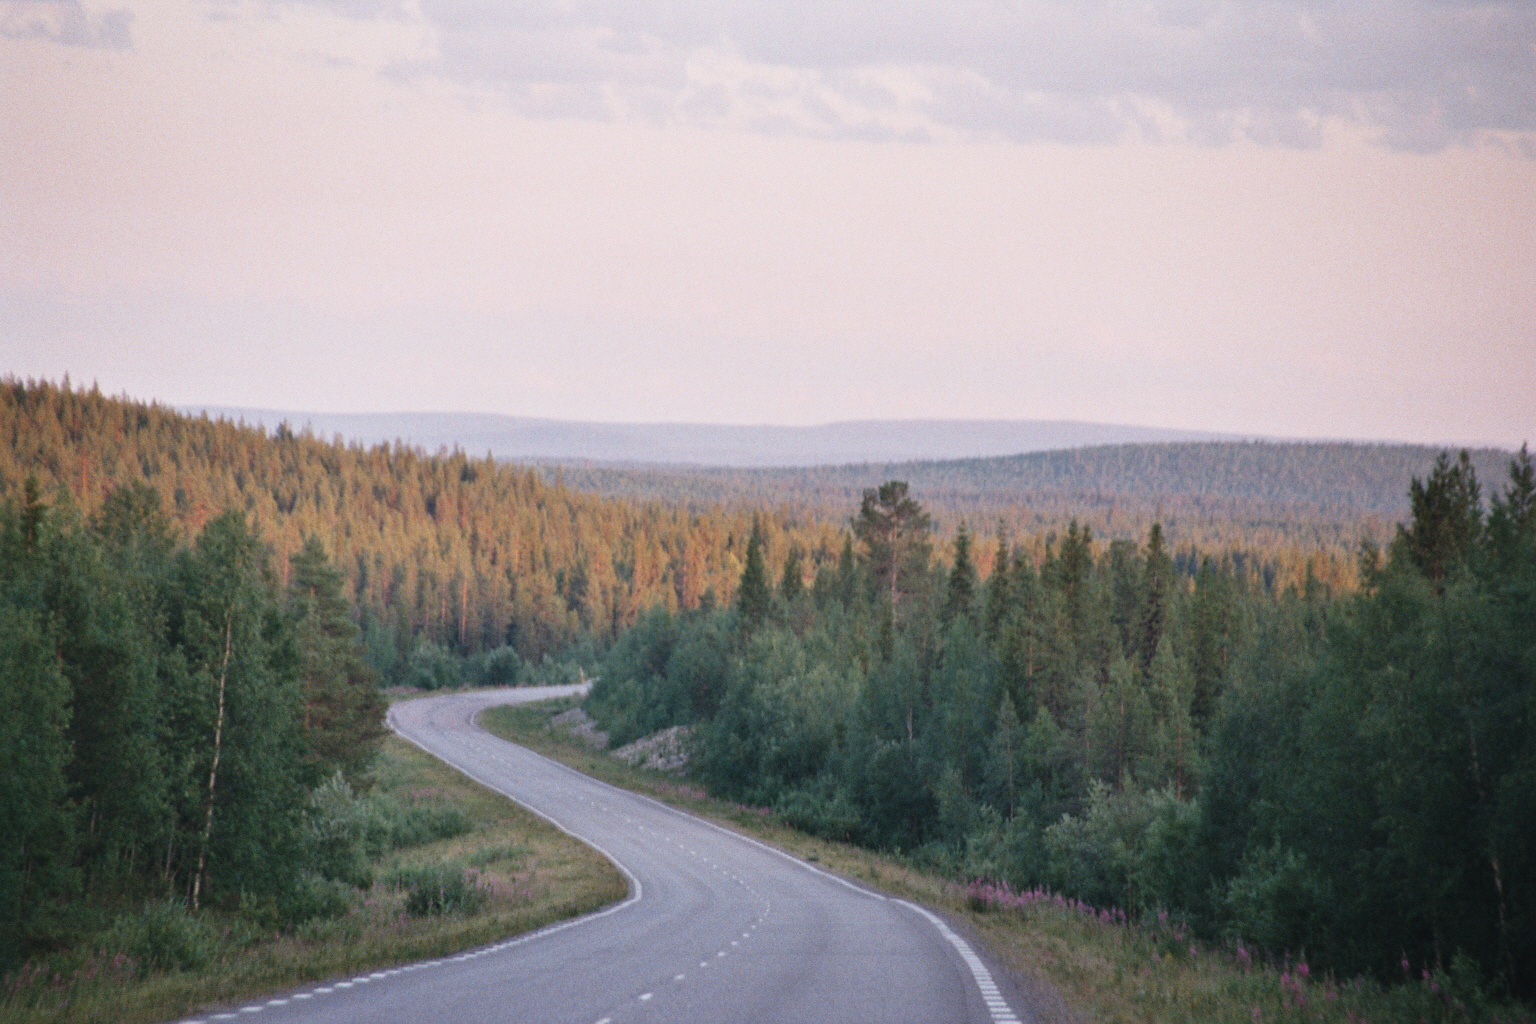 Highway E45 in the Taiga in northern Sweden 2014